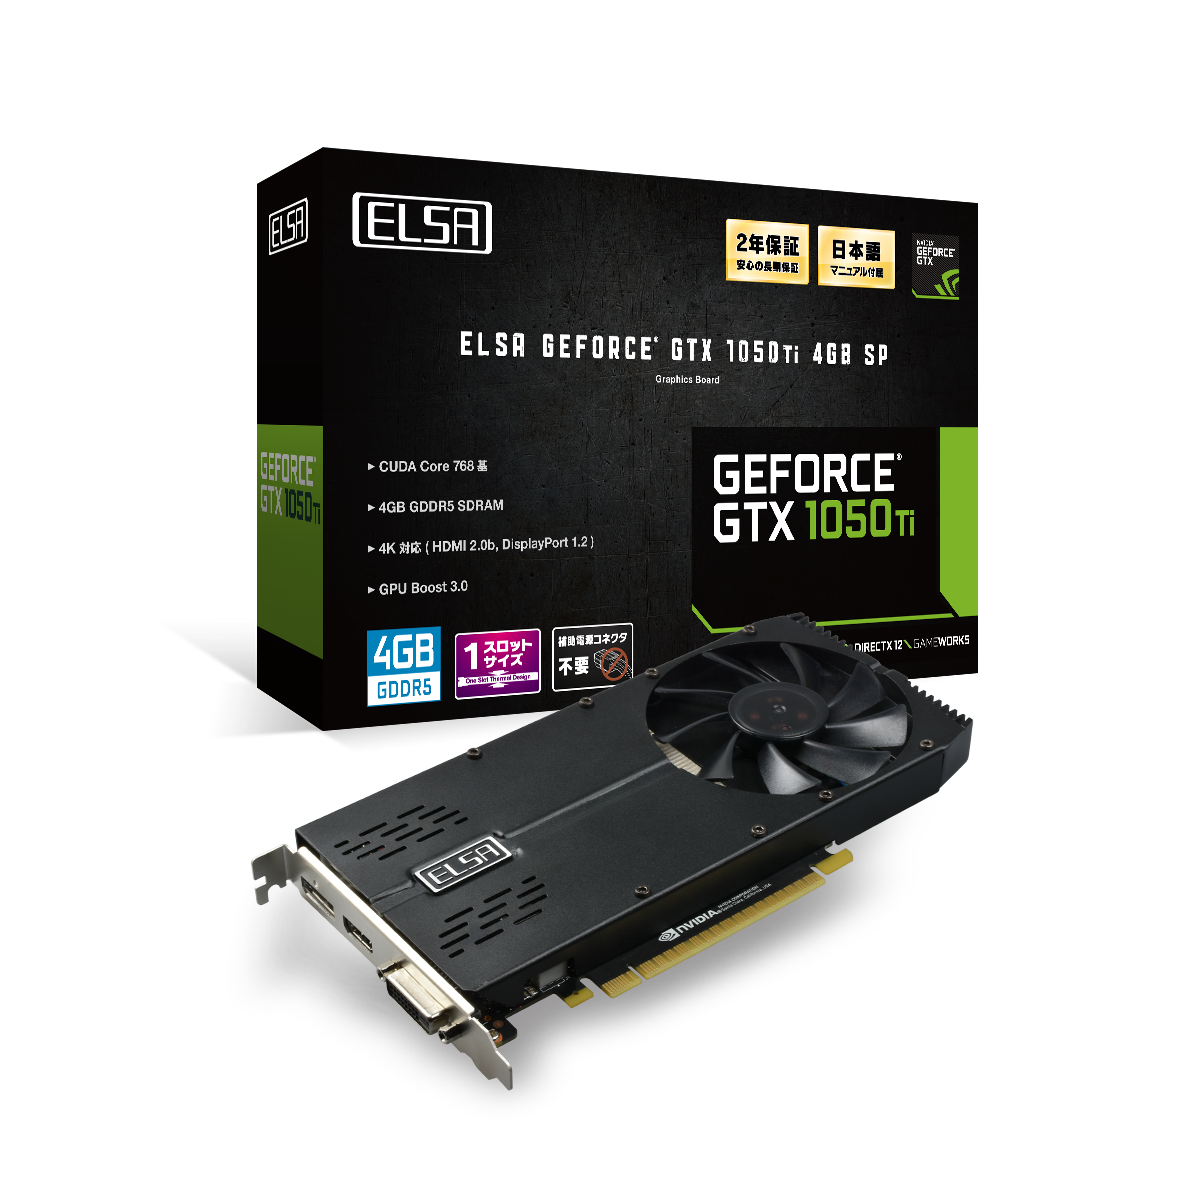 elsa_geforce_gtx_1050ti_4gb_sp_3qtr+box